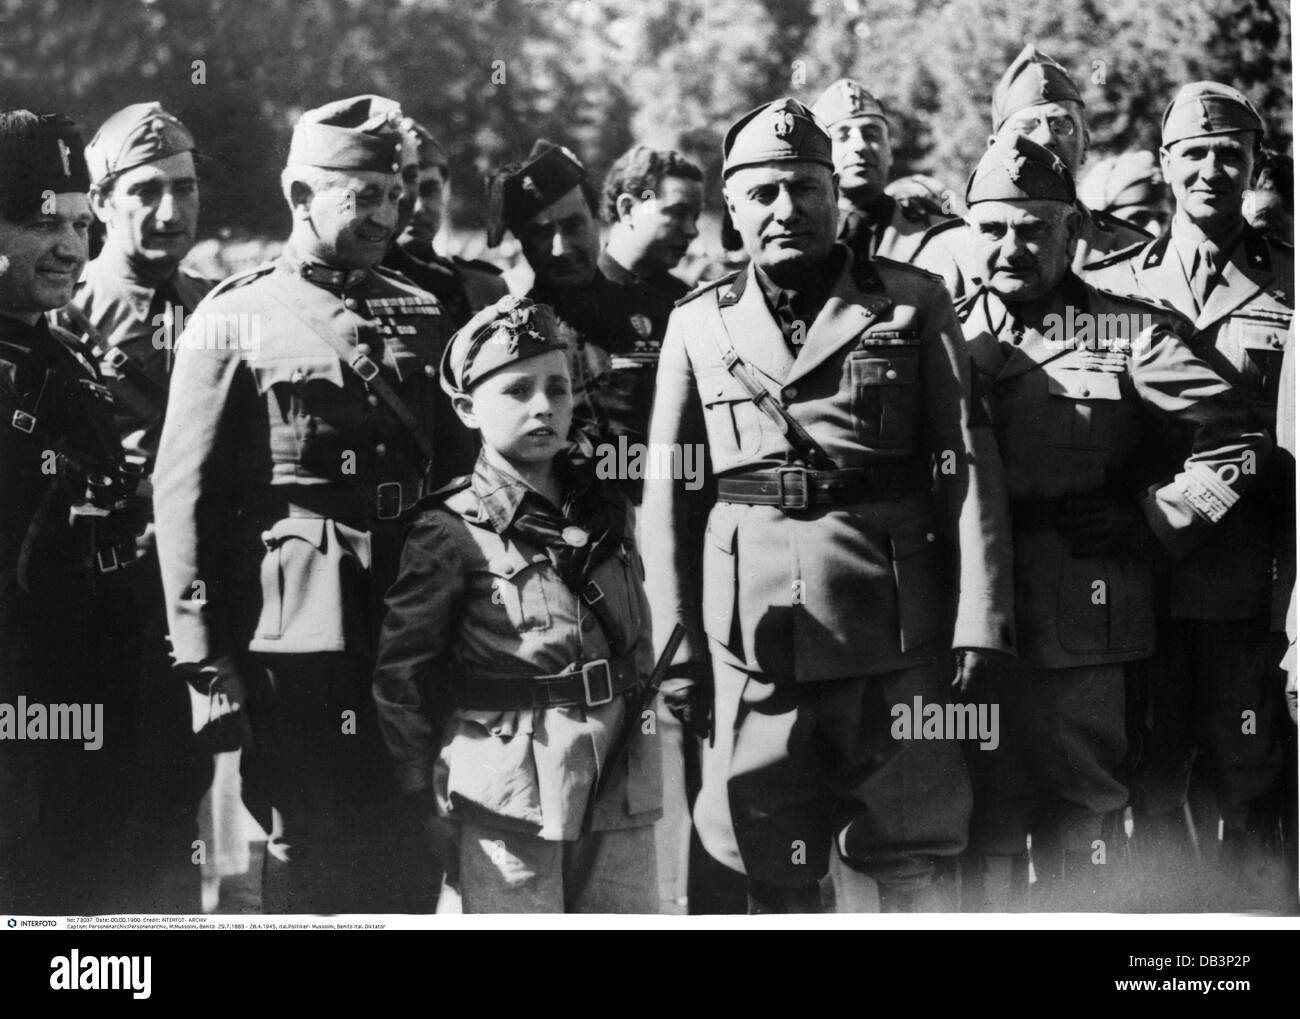 personal opinion on mussolinis totalitarian dictatorship in italy Totalitarianism as a method of government first conceptually developed in the 1920's by italian fascists, primarily giovanni amendola benito mussolini - having seized power in italy in 1922, mussolini become the leader of the nation and immediately began to rule in a totalitarian manner.